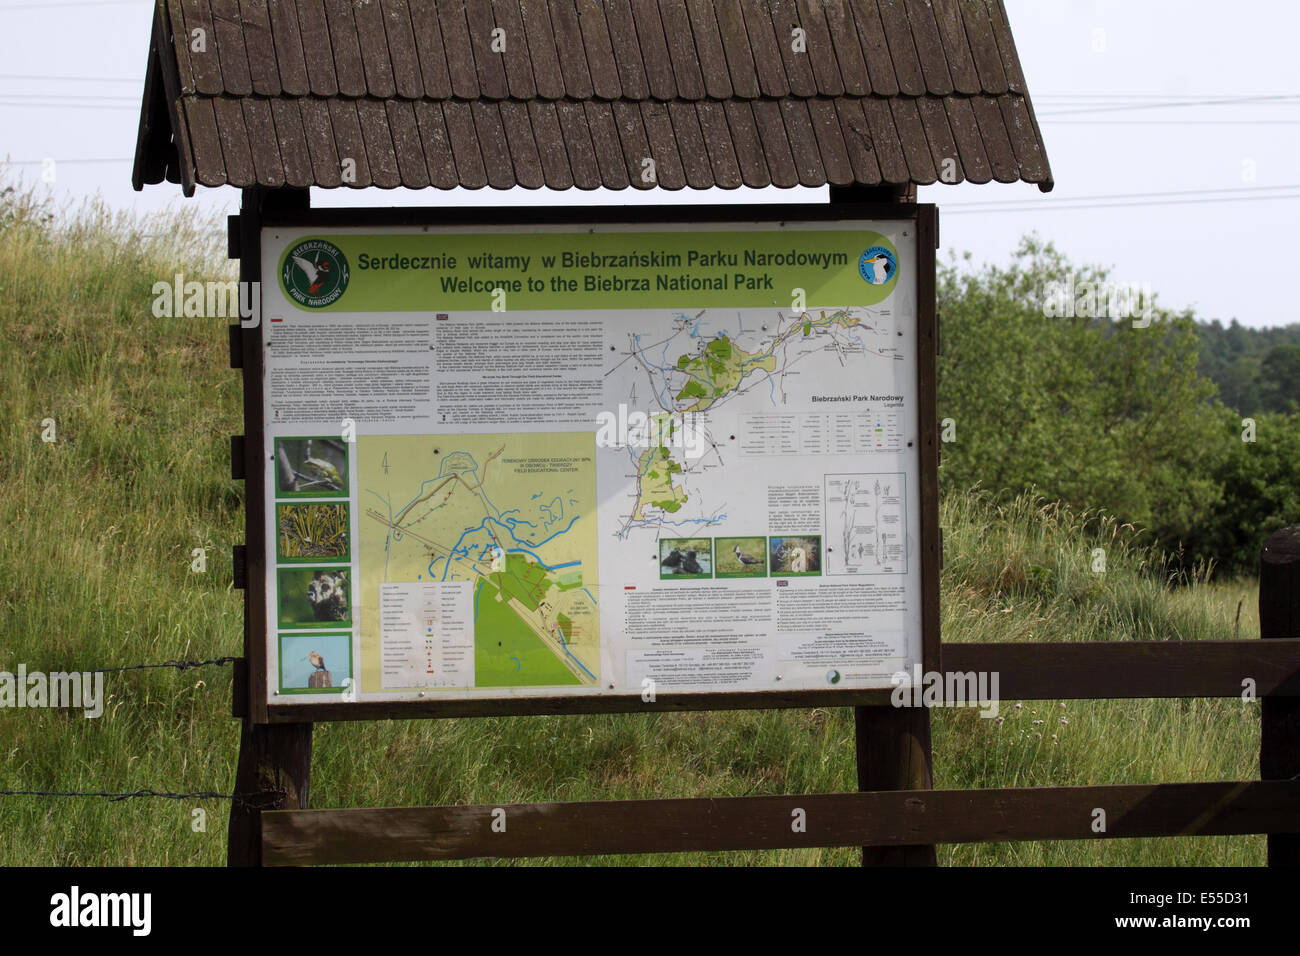 Information board at Biebrza National Park in Poland Stock Photo